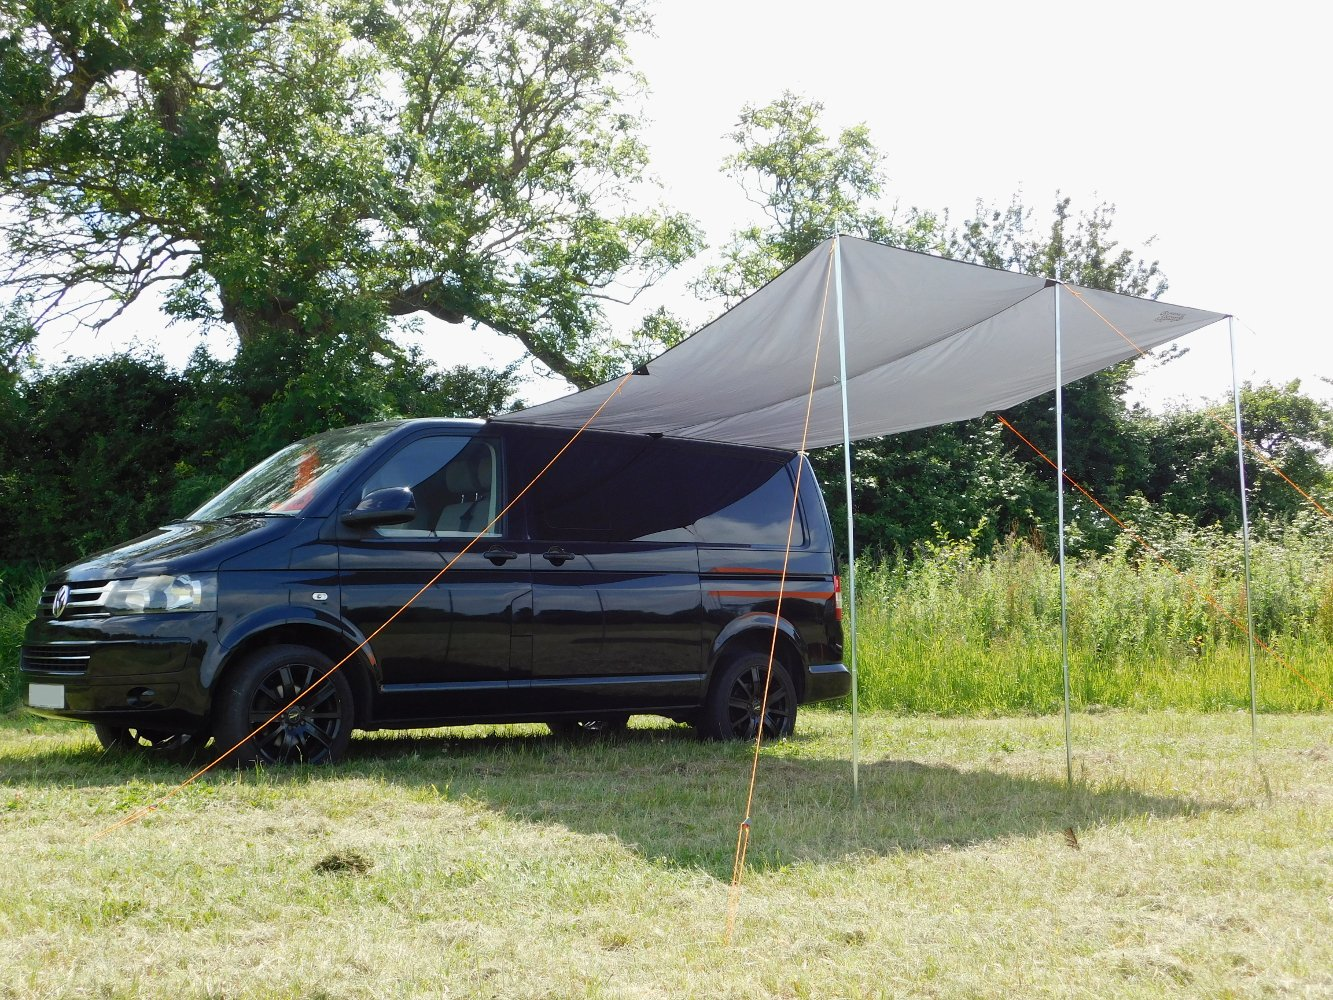 DEBUS Campervan Sun Canopy Awning - Anthracite Grey 6